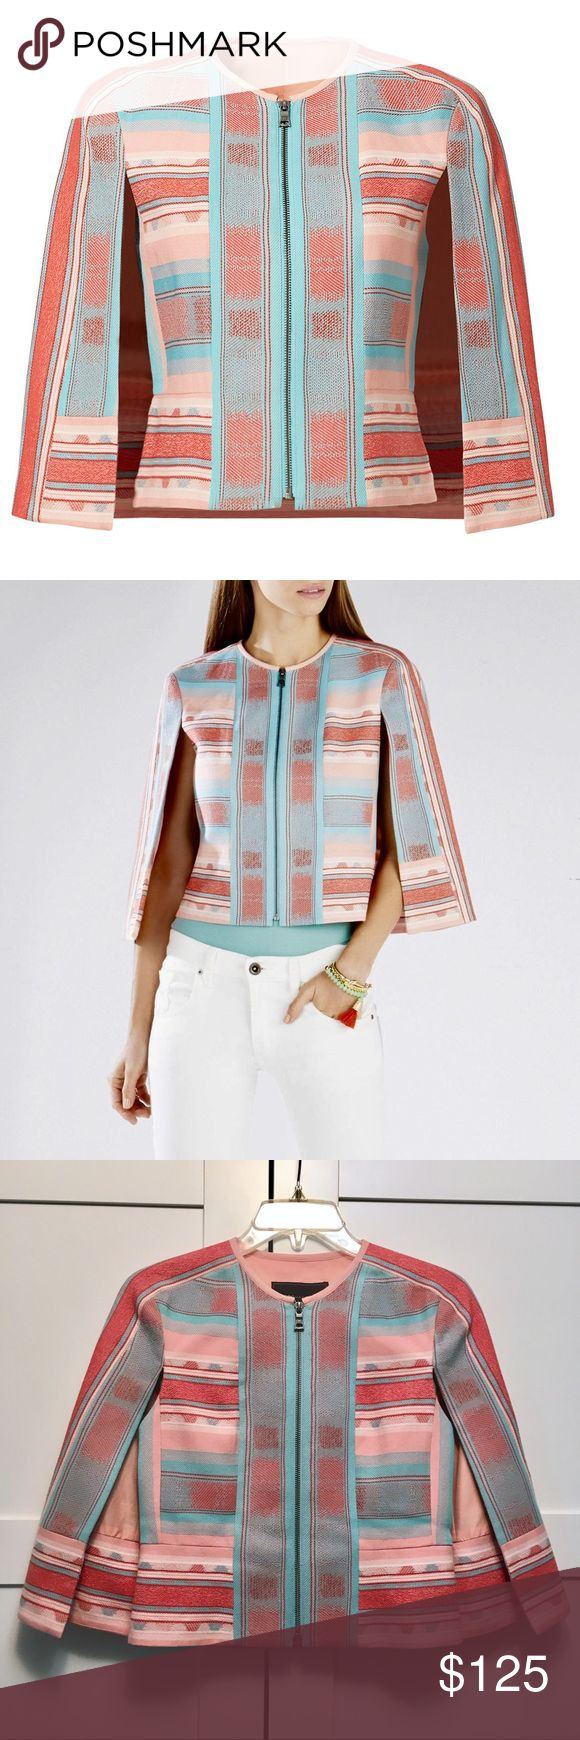 "BCBG ""Zachary"" Cape Jacket Size XXS Absolutely stunning BCBG MaxAzria jacket, style ""Zachary"" with stitched southwestern pattern. Pastel colors - a peachy pink, mint/turquoise, and red for contrast. Poncho style with open cape sleeves. Fitted bodice with front zipper. Material: cotton + polyester jacquard. Size XXS, may fit XS too, see measurements in comments. Worn ONCE for a couple hours, excellent condition, has a teeny-tiny faint dot on collar (size of pinhole) that nobody can notice…"